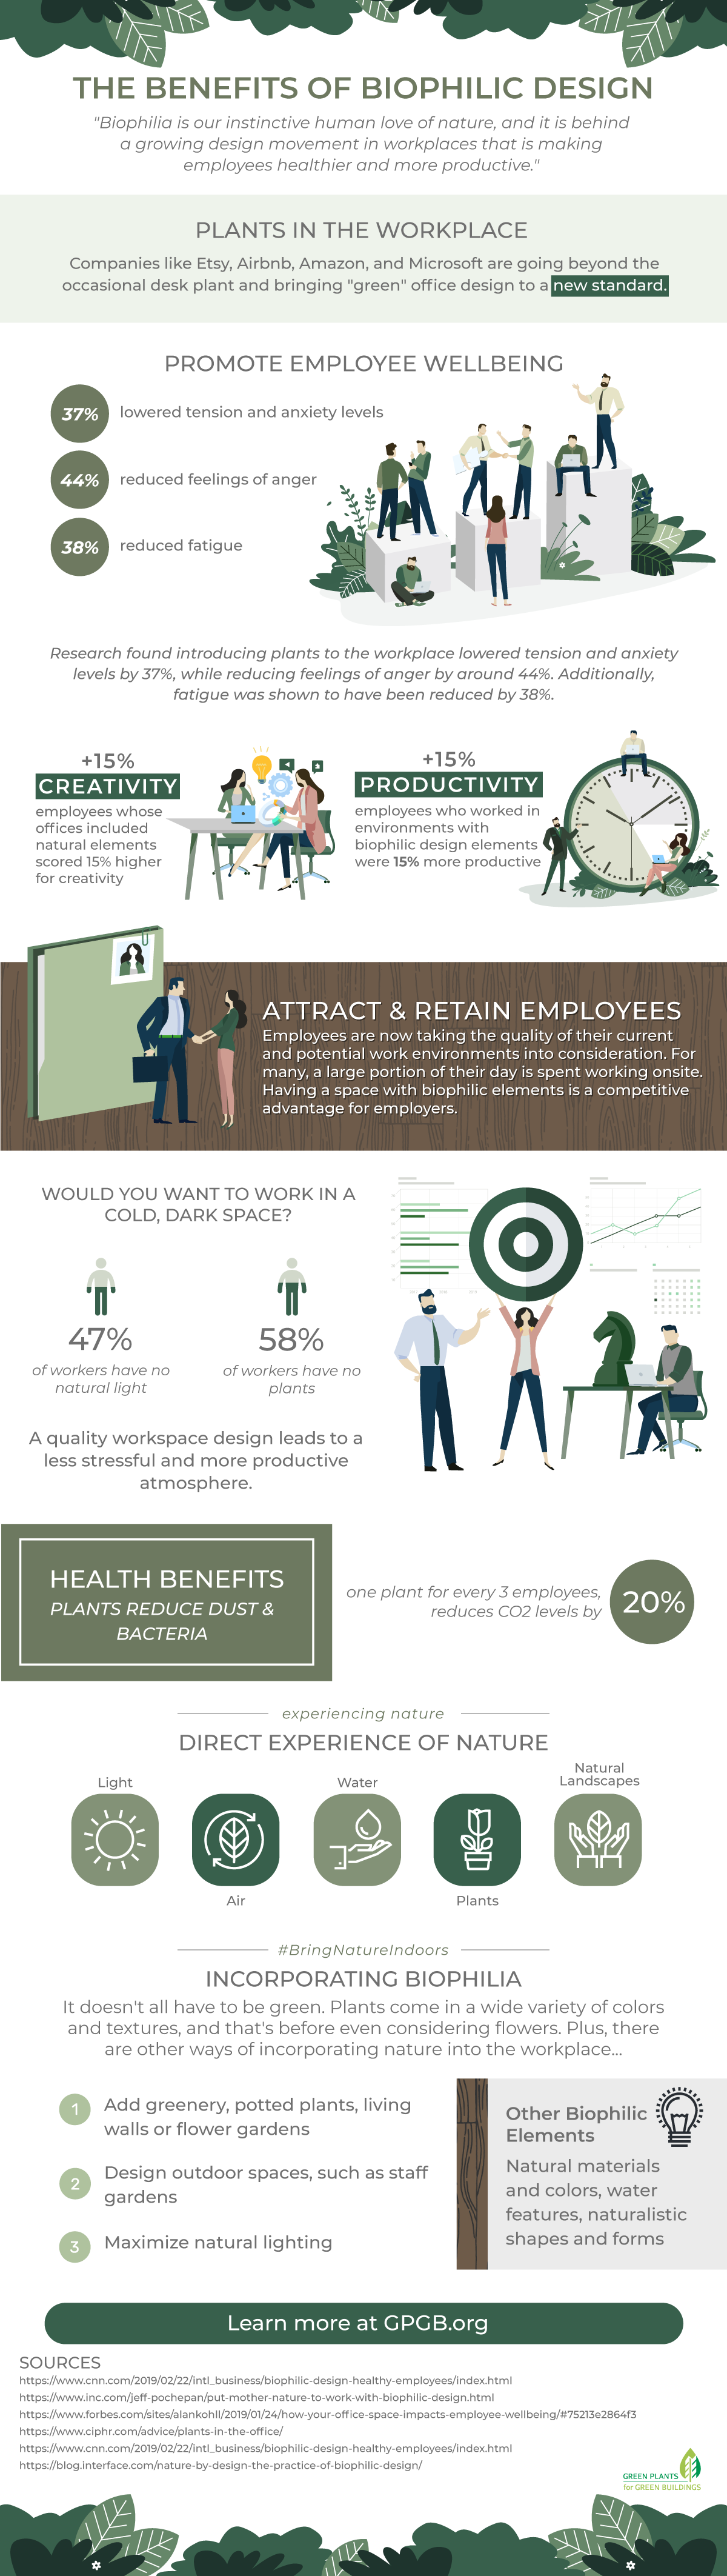 The Benefits of Biophilic Design Infographic